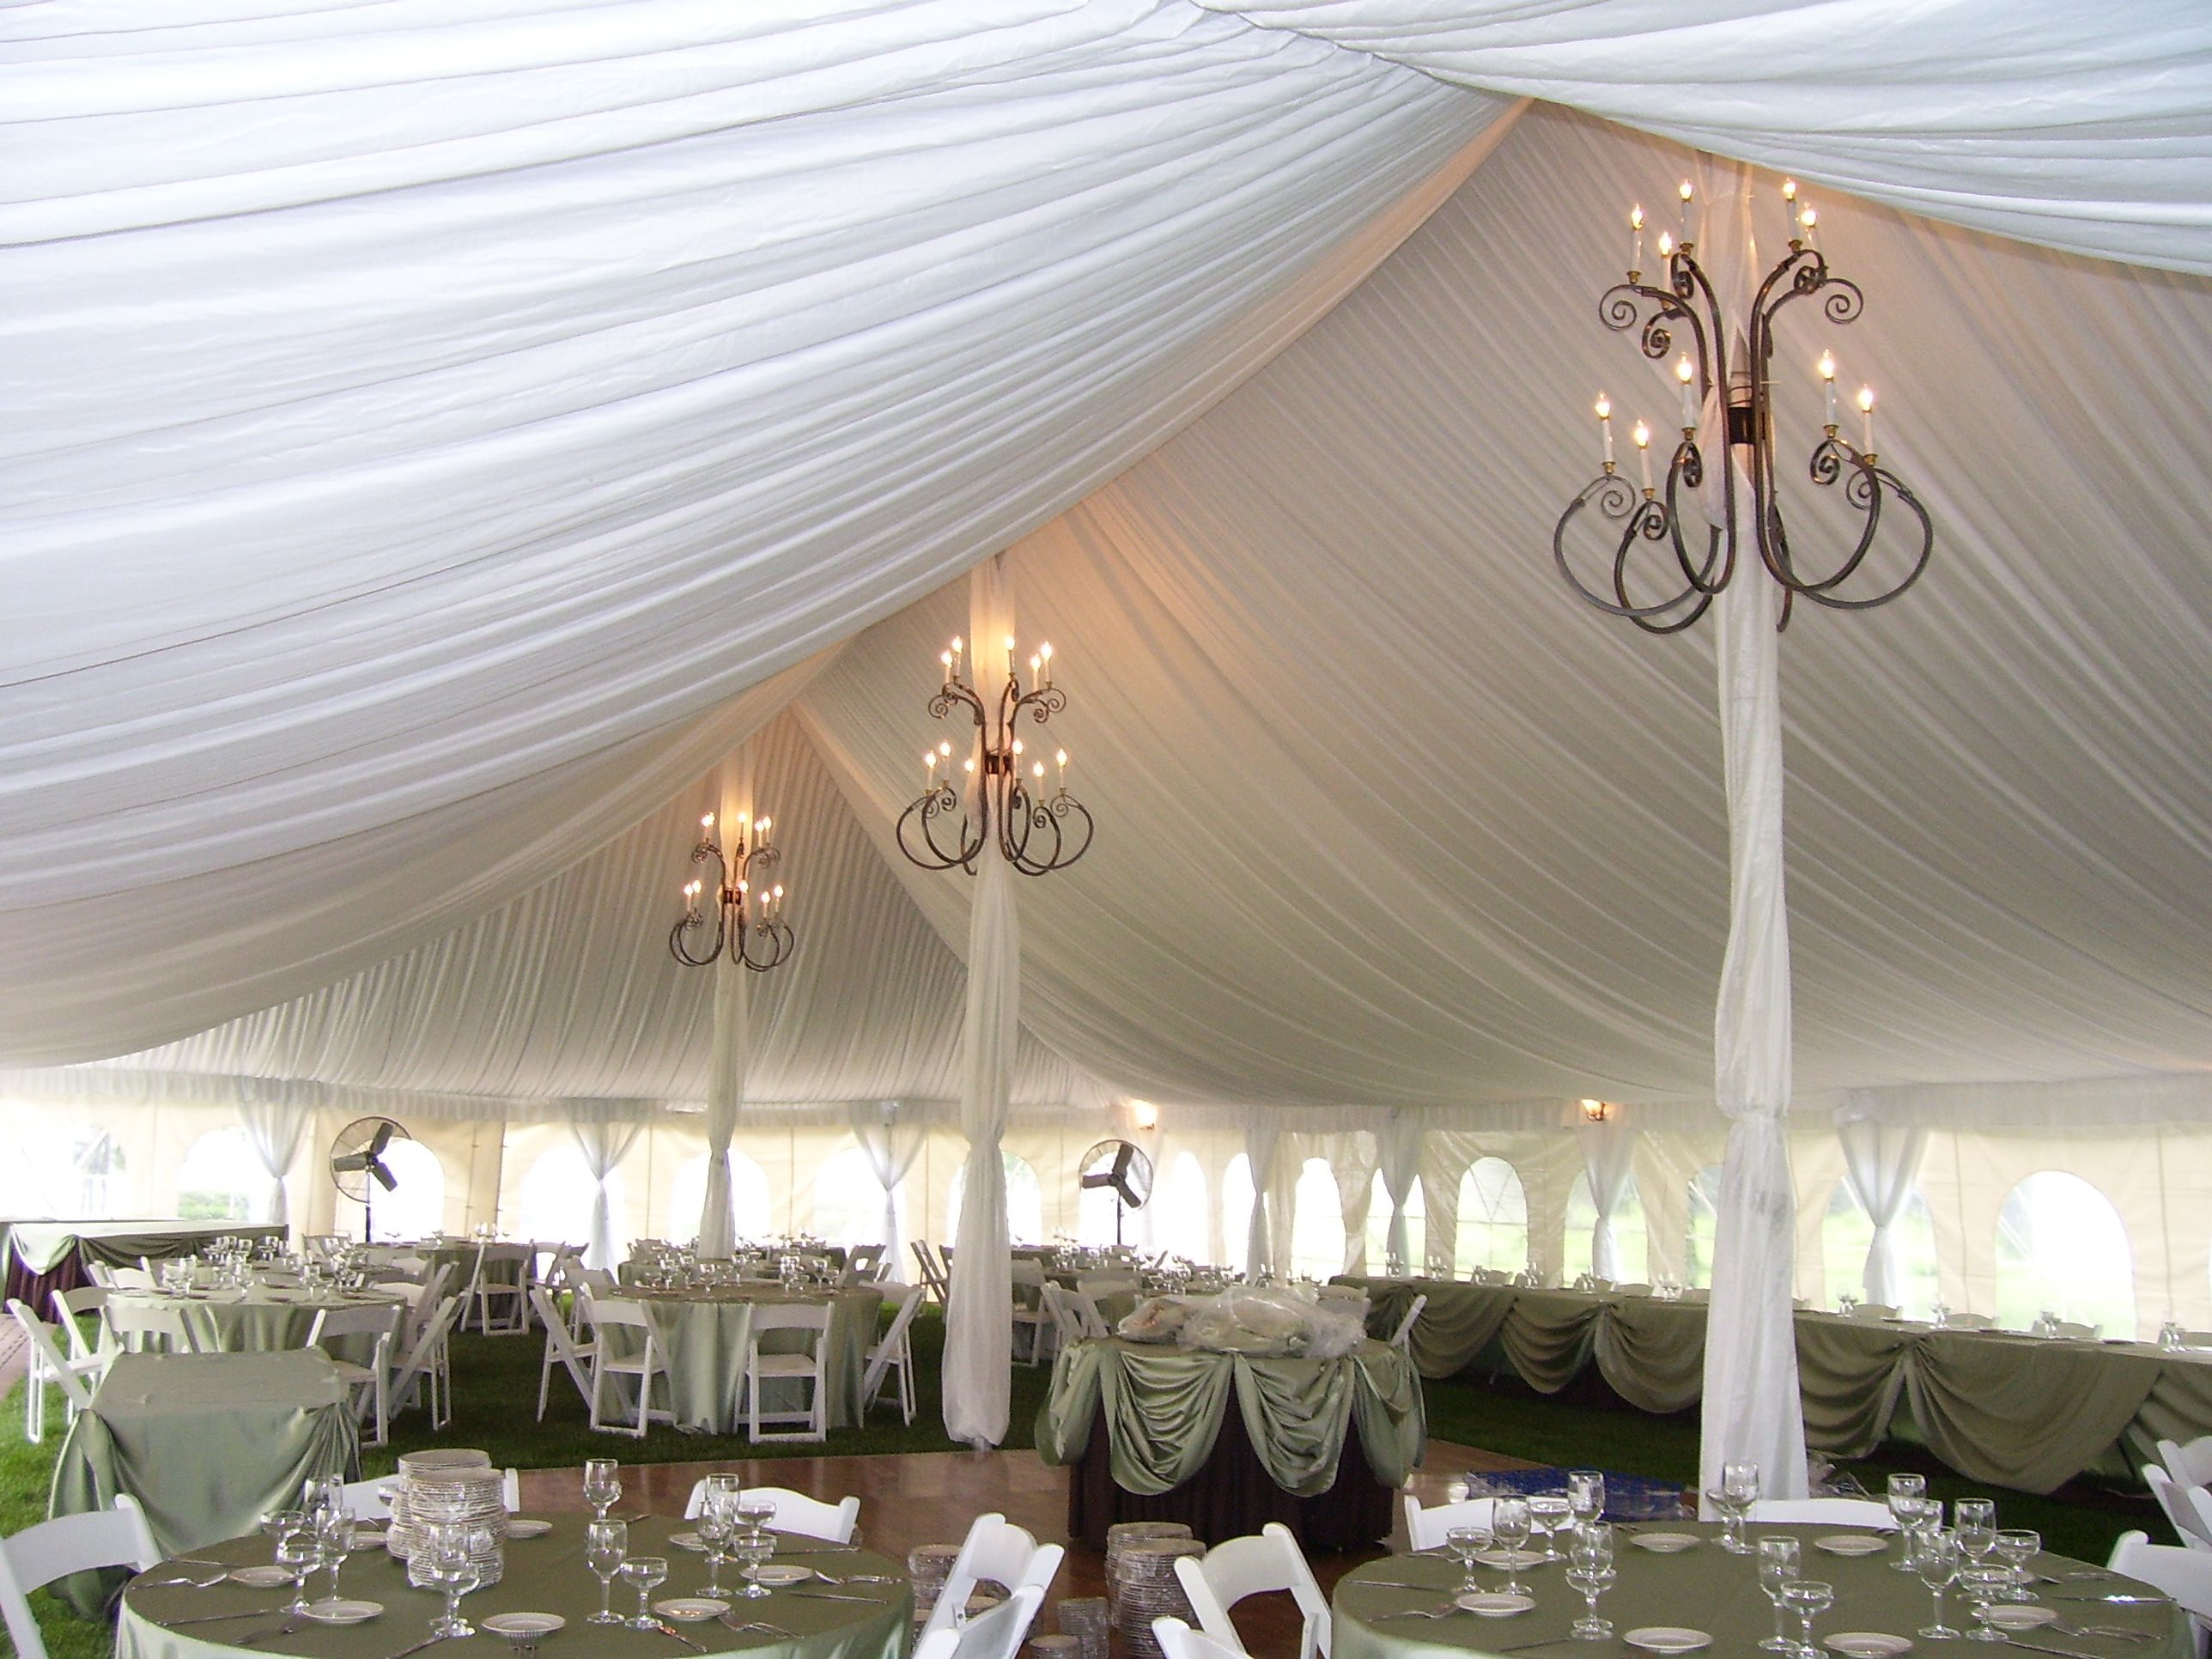 Pole tent for wedding